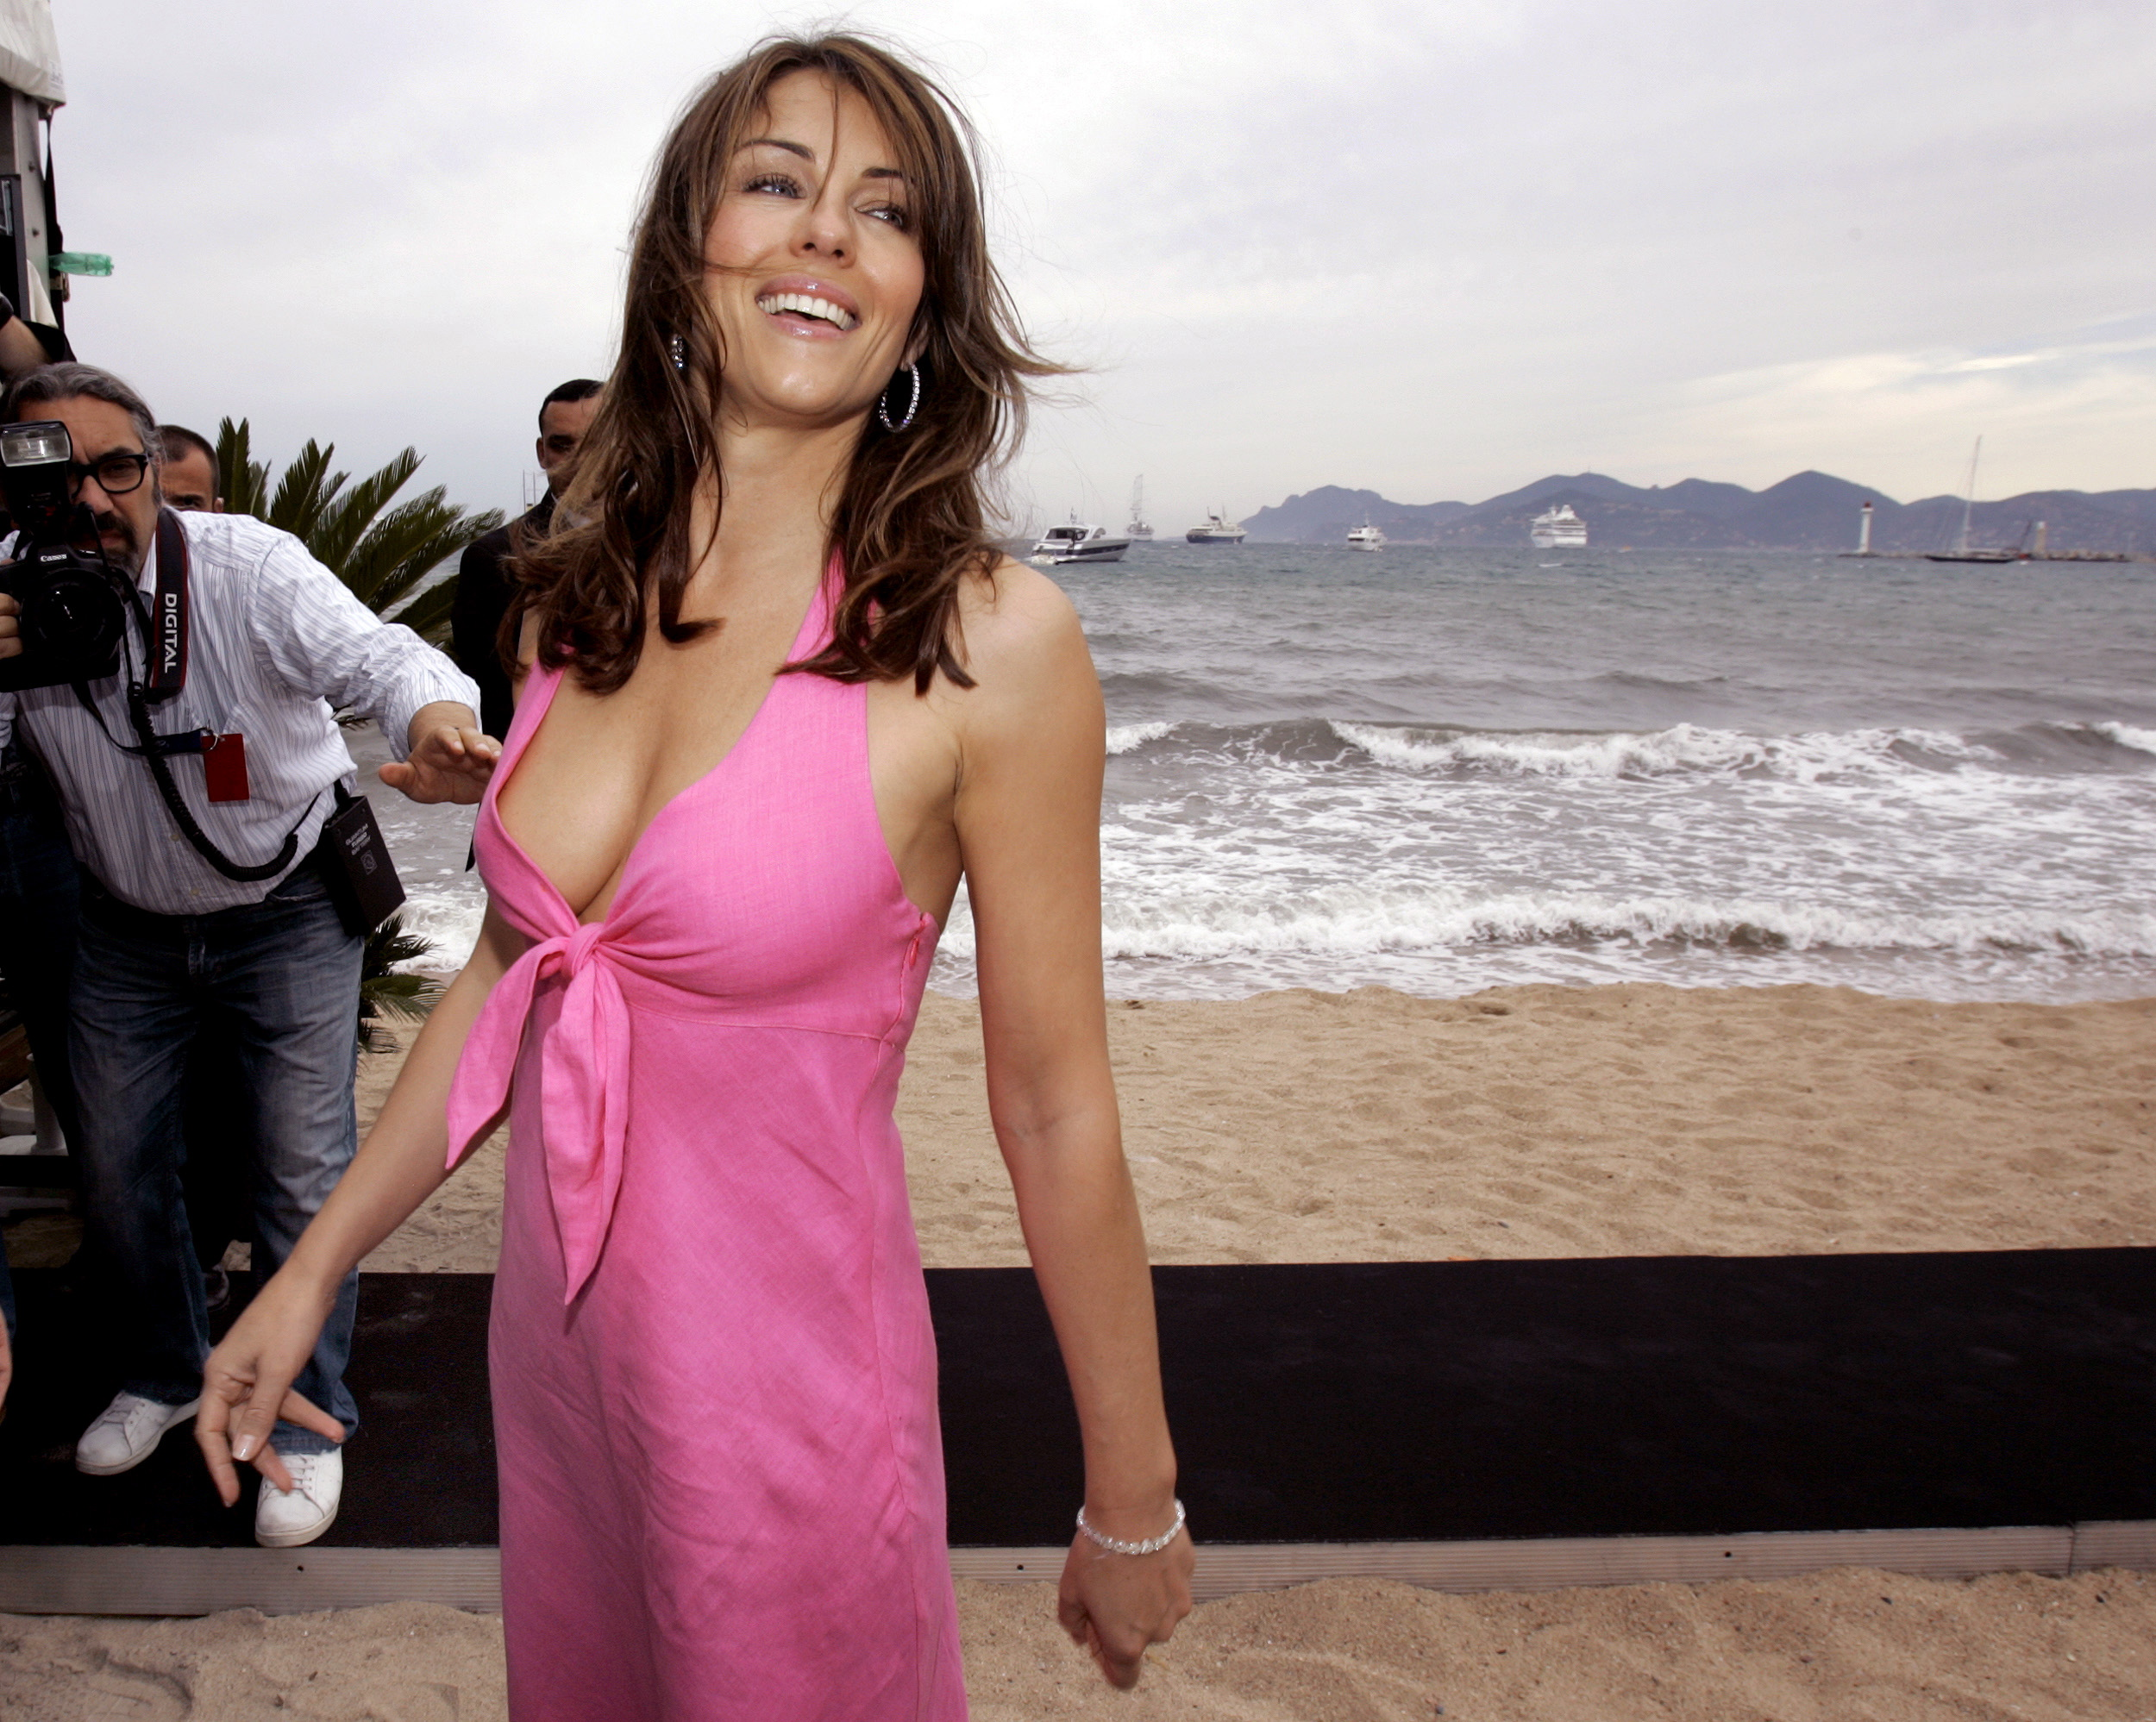 British actress Elizabeth Hurley poses for photographers during a beachside event to promote her swimwear range in Cannes, May 23, 2006.